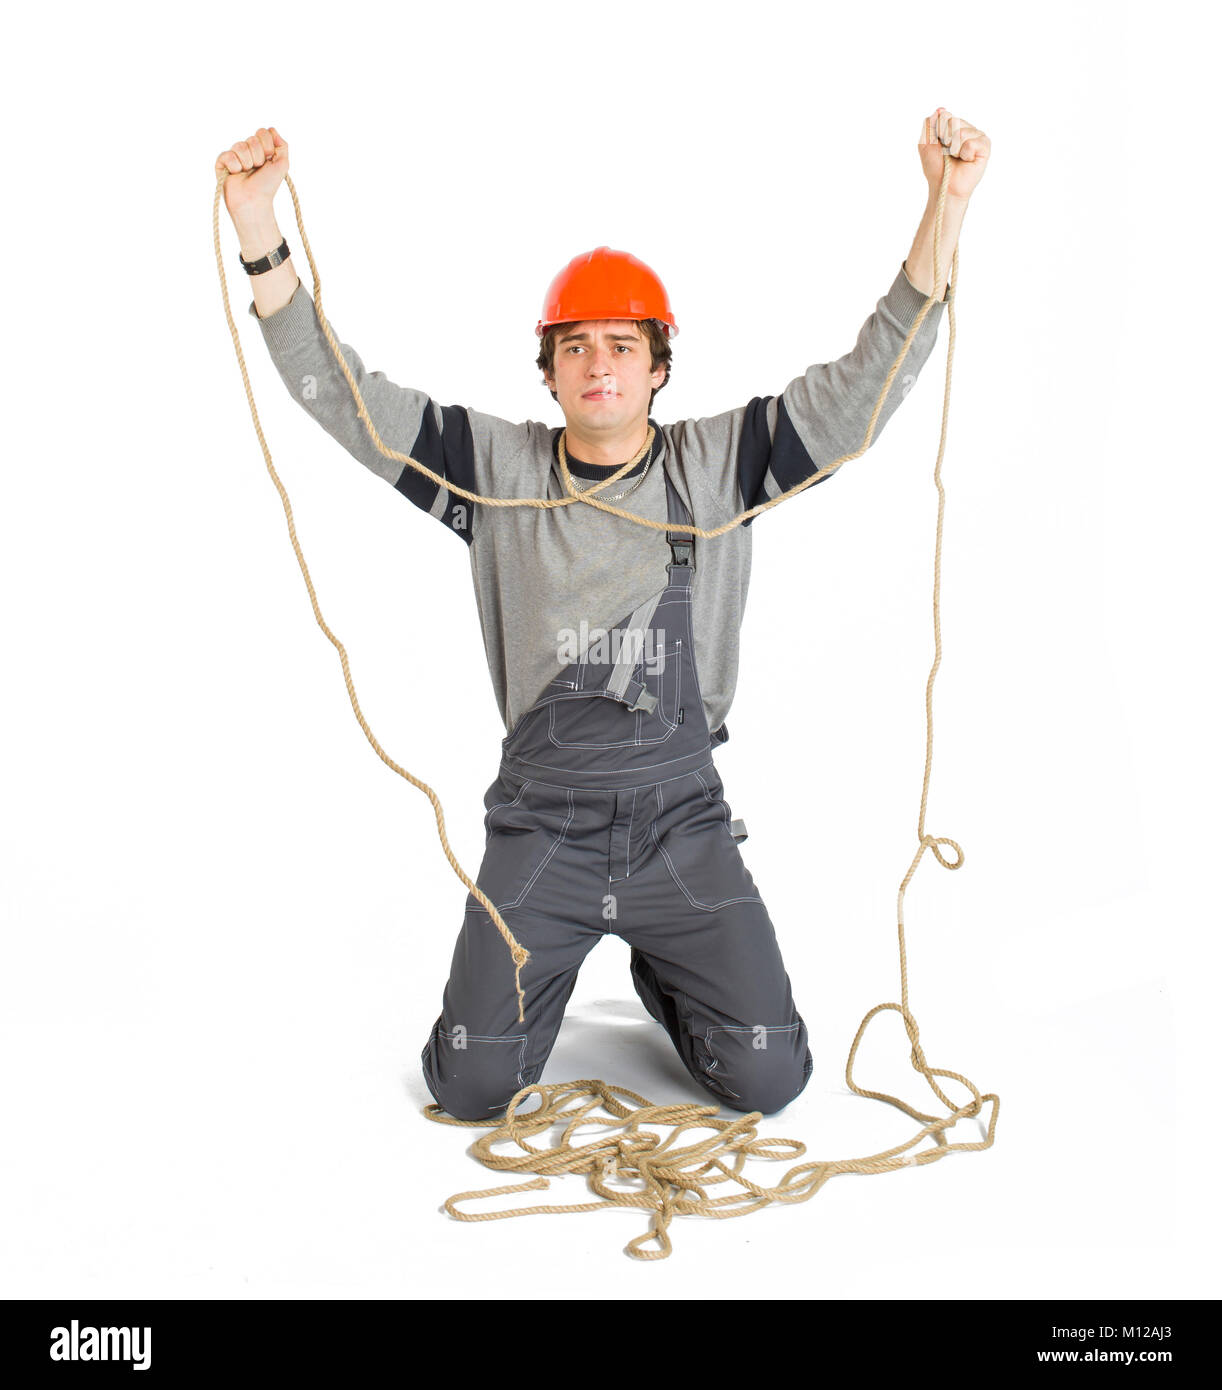 A young worker in grey uniform tied up with rope on white isolated background. - Stock Image